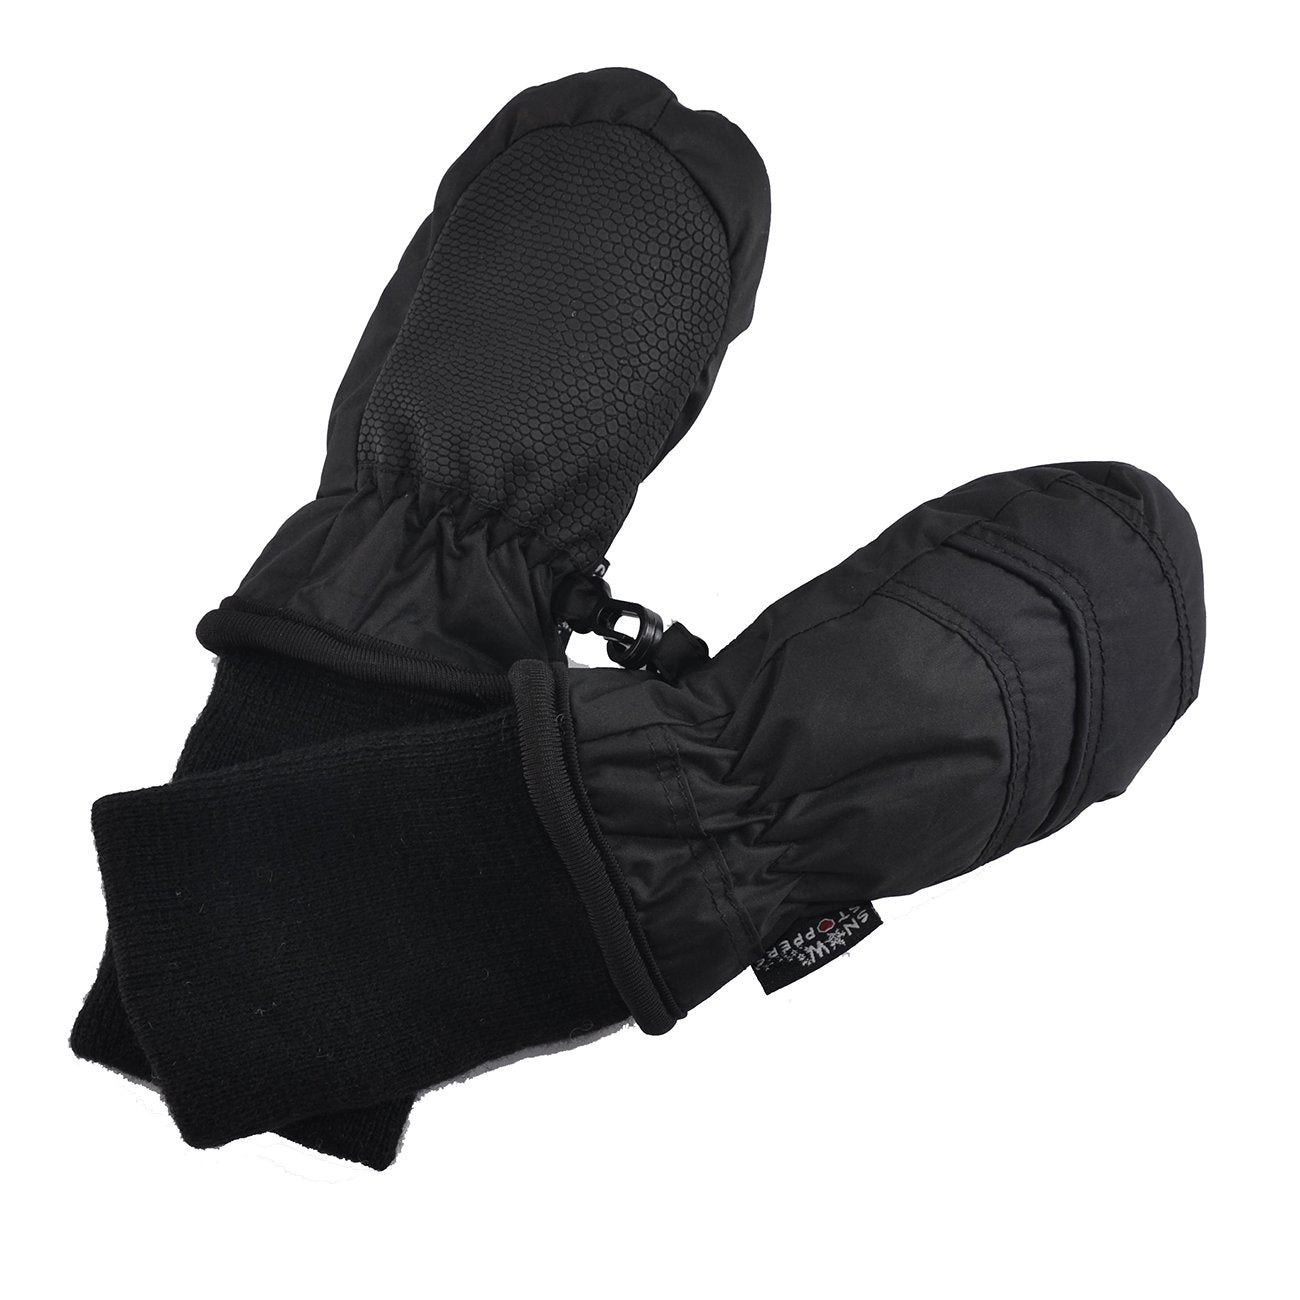 Nylon Mittens - Black